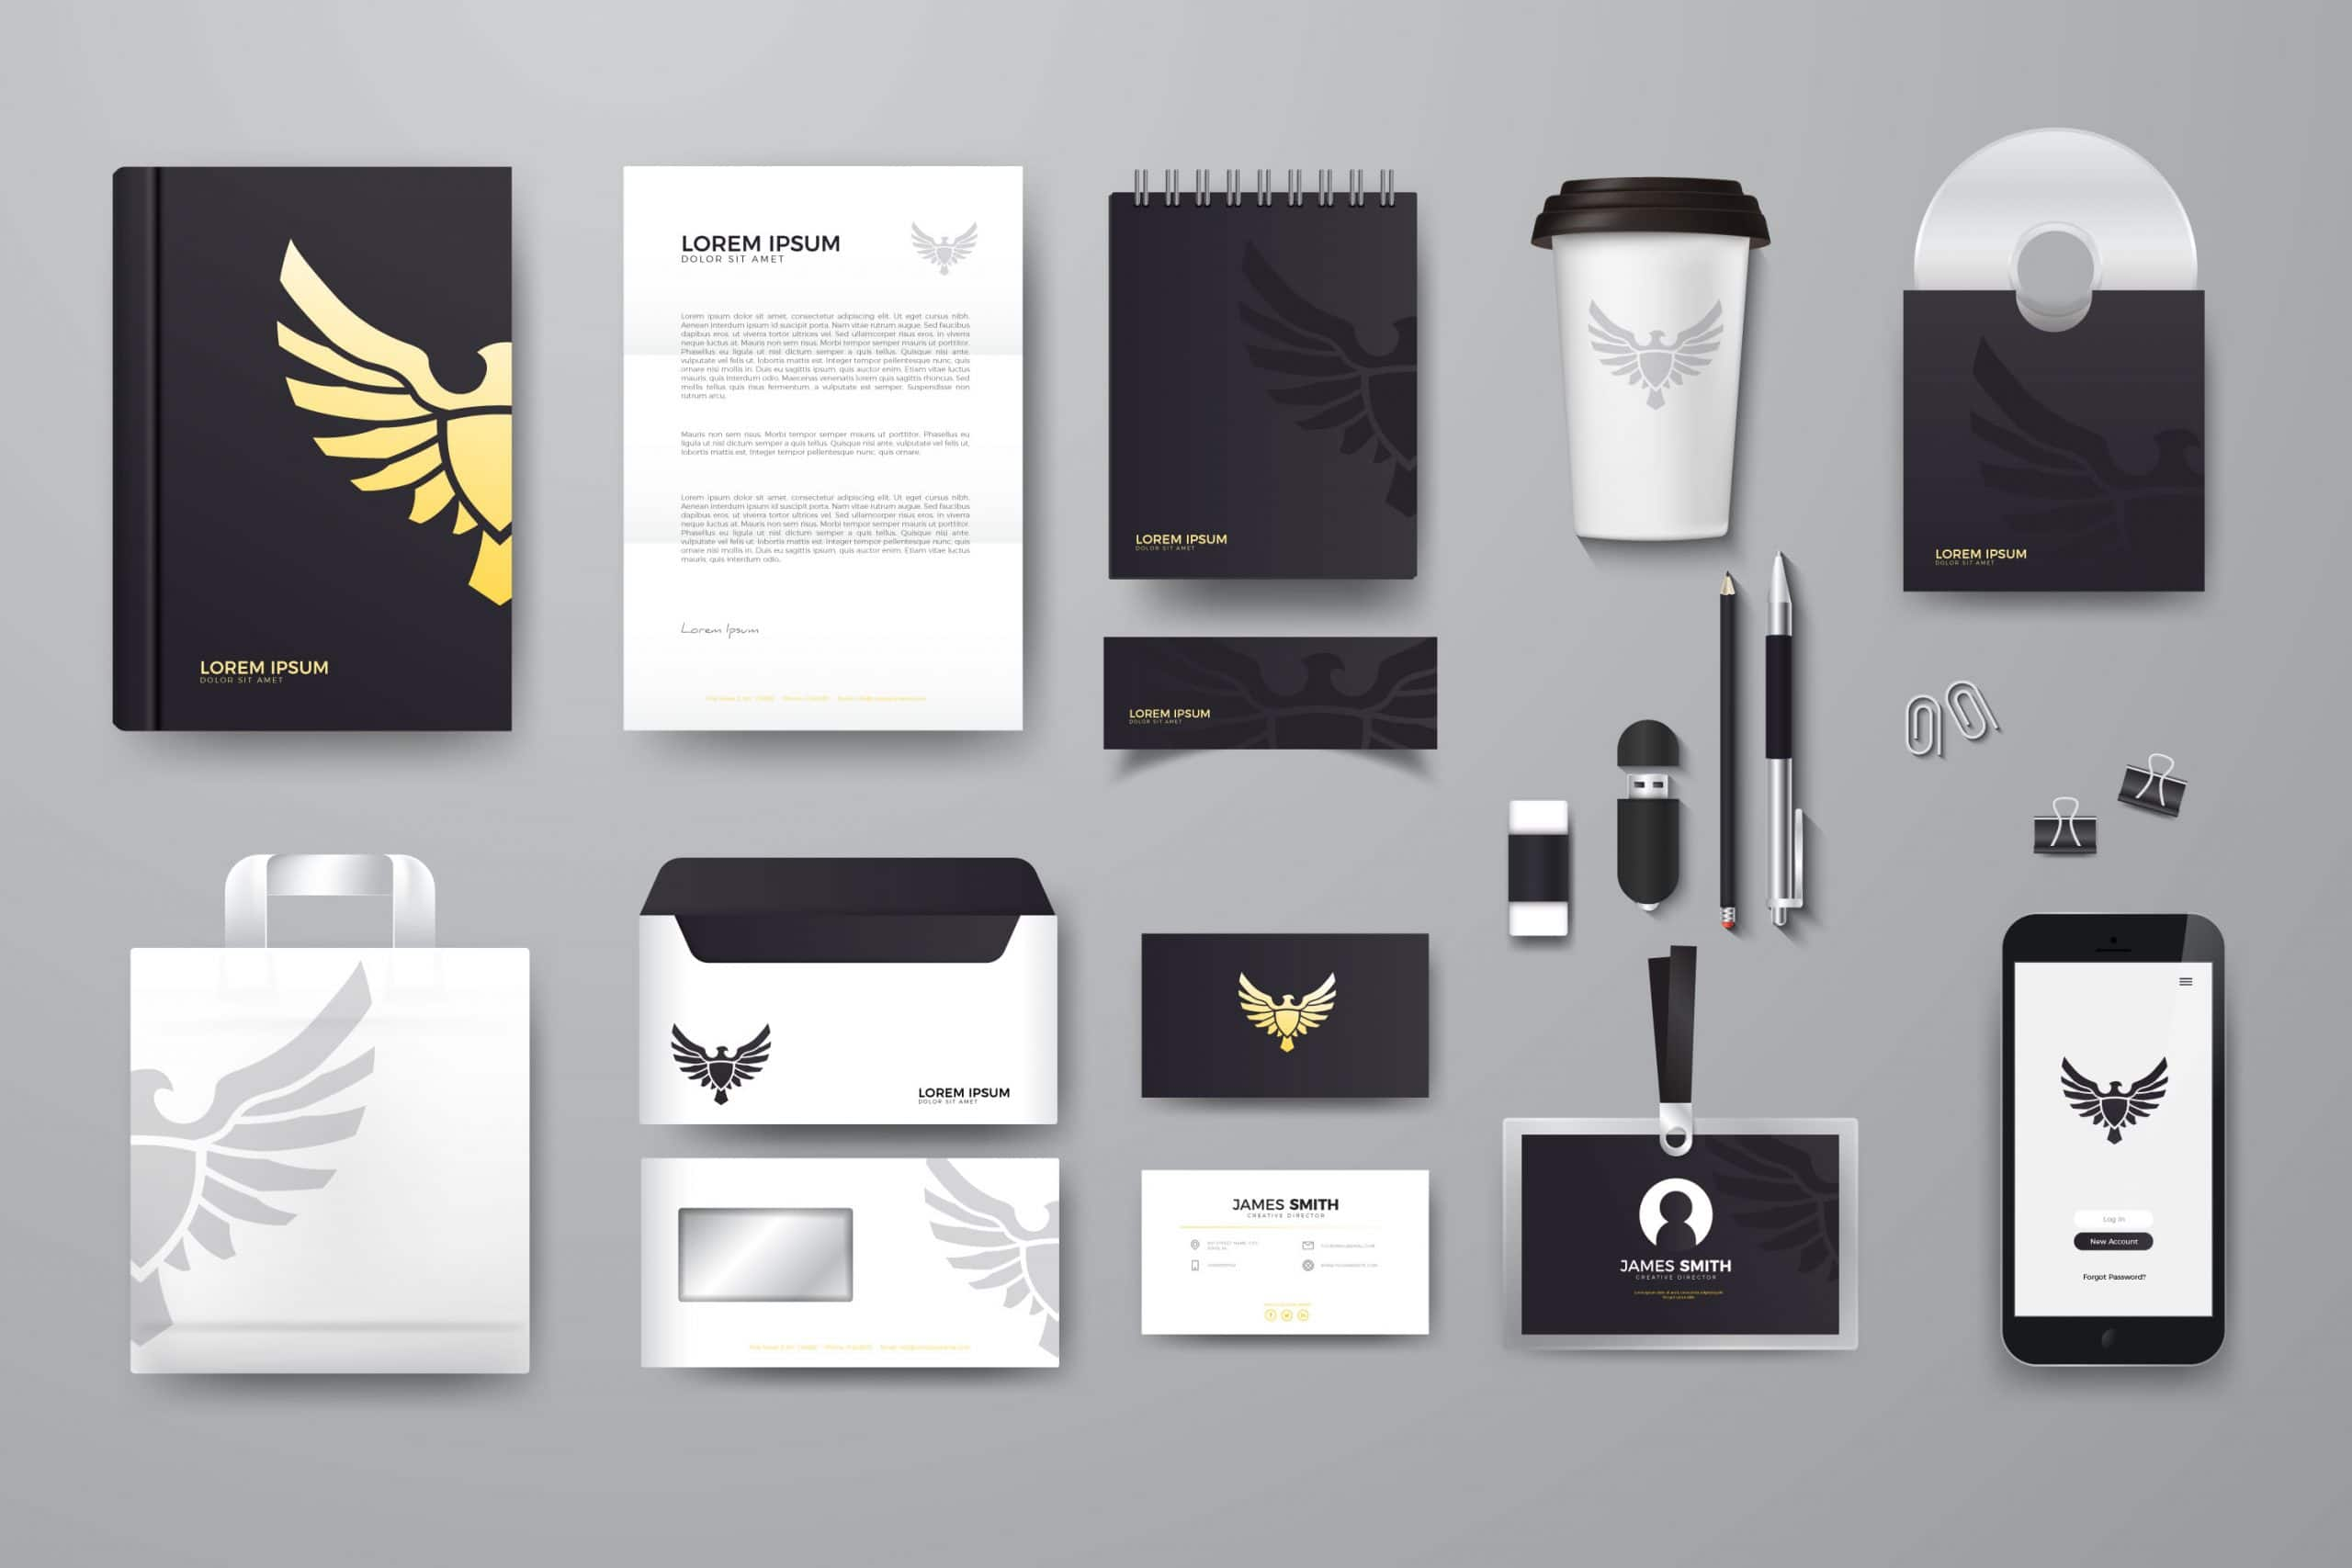 Best Graphic Design Company - Logo Business cards, Letter Head Mockup